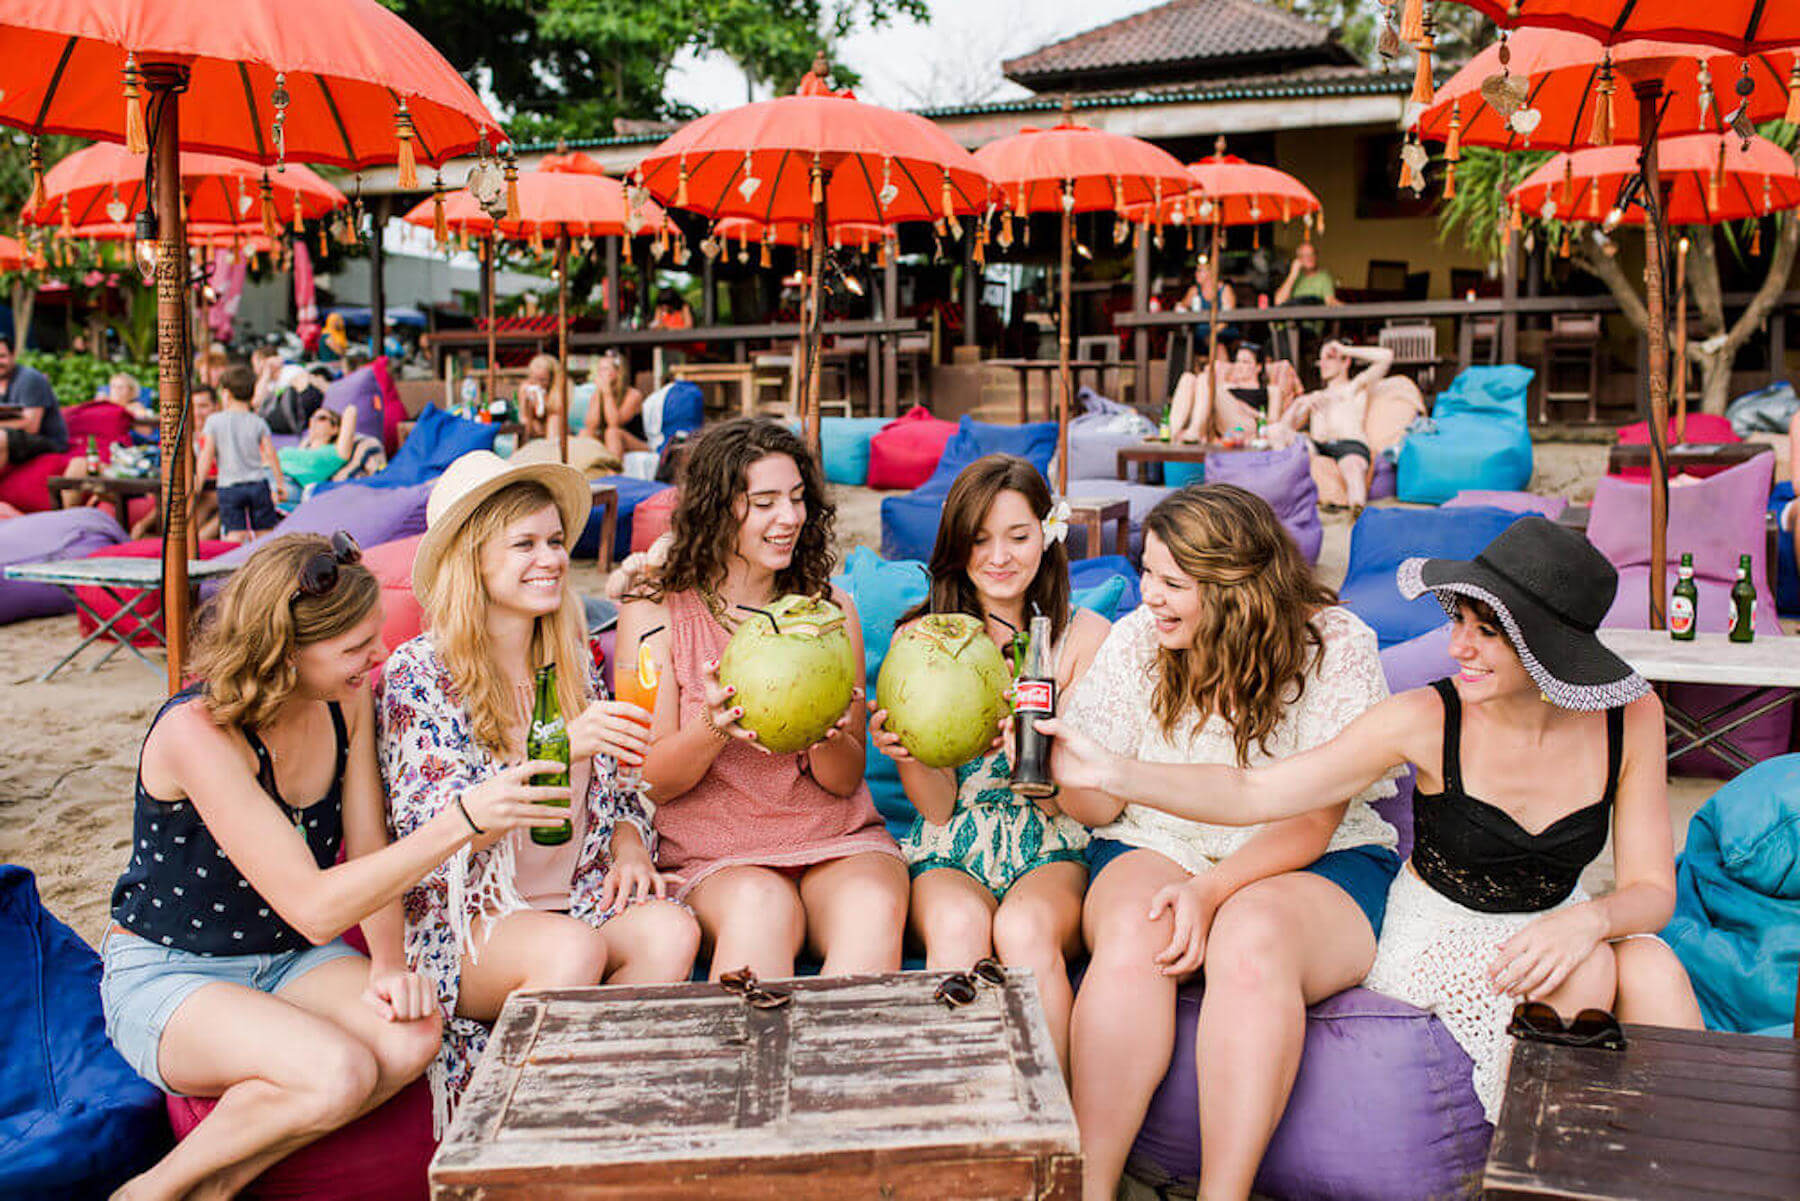 Six woman sitting together and cheering their drinks at Seminyak Beach, Bali